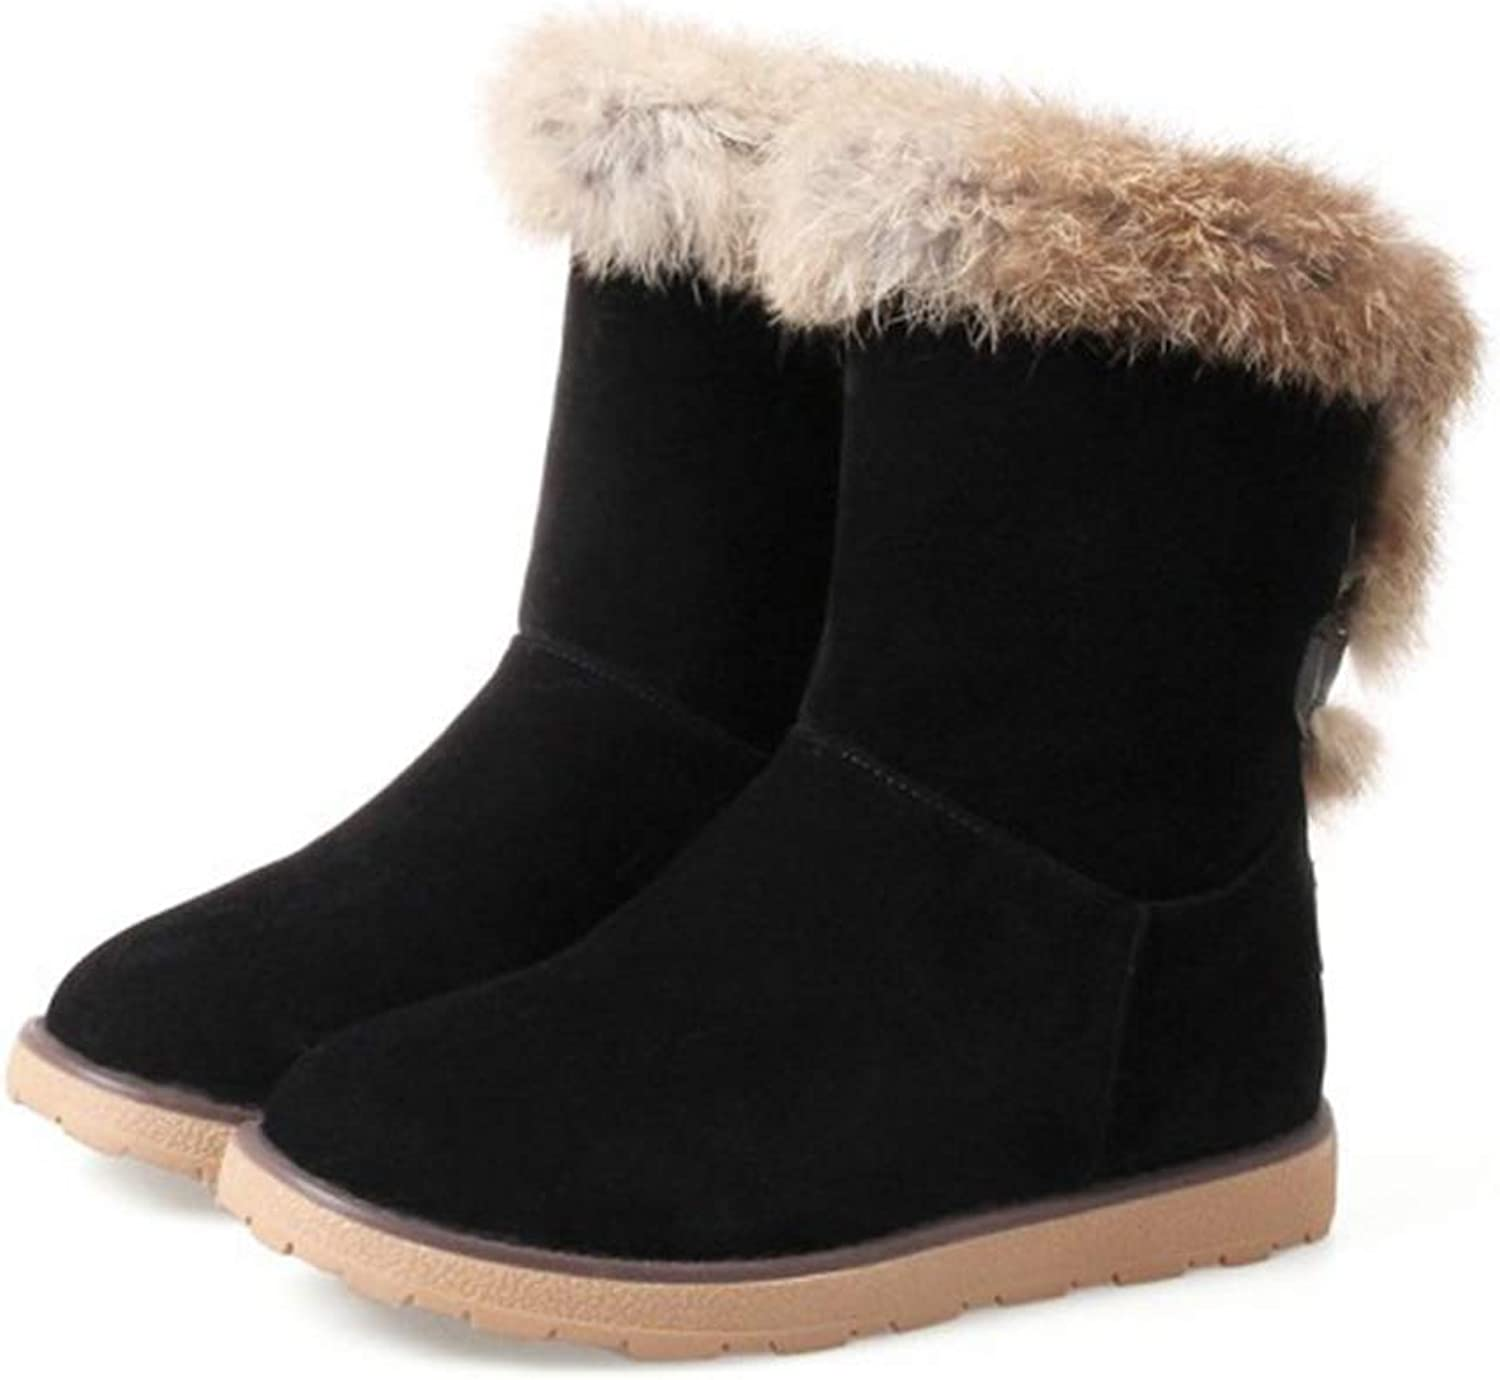 Kyle Walsh Pa Women Casual Snow Boots Girls Warm Fur Round Toe Soft Comfortable Winter Ankle Booties